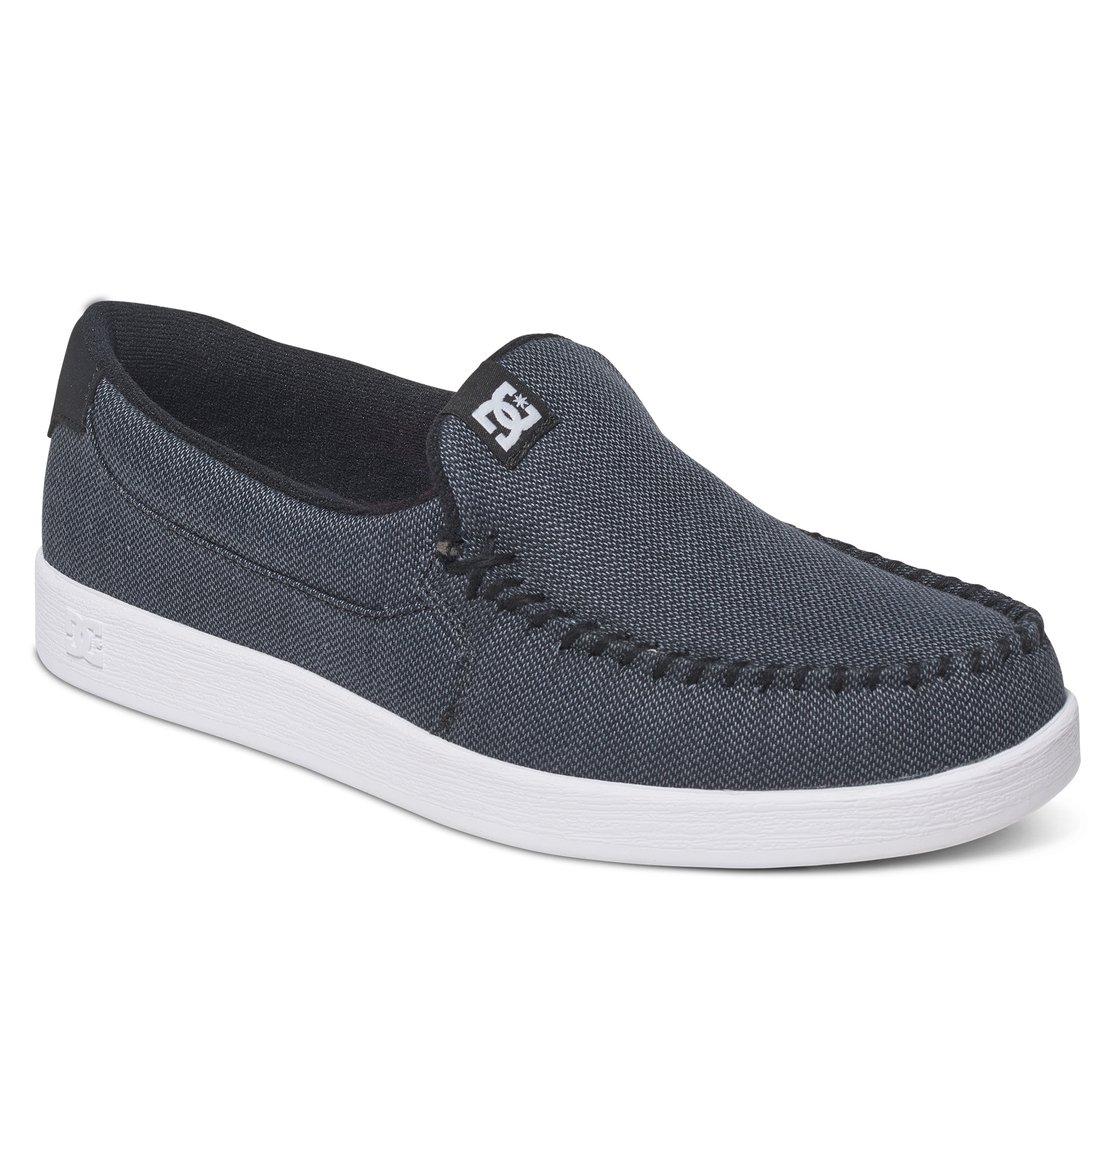 Dc Slip On Villian Shoes